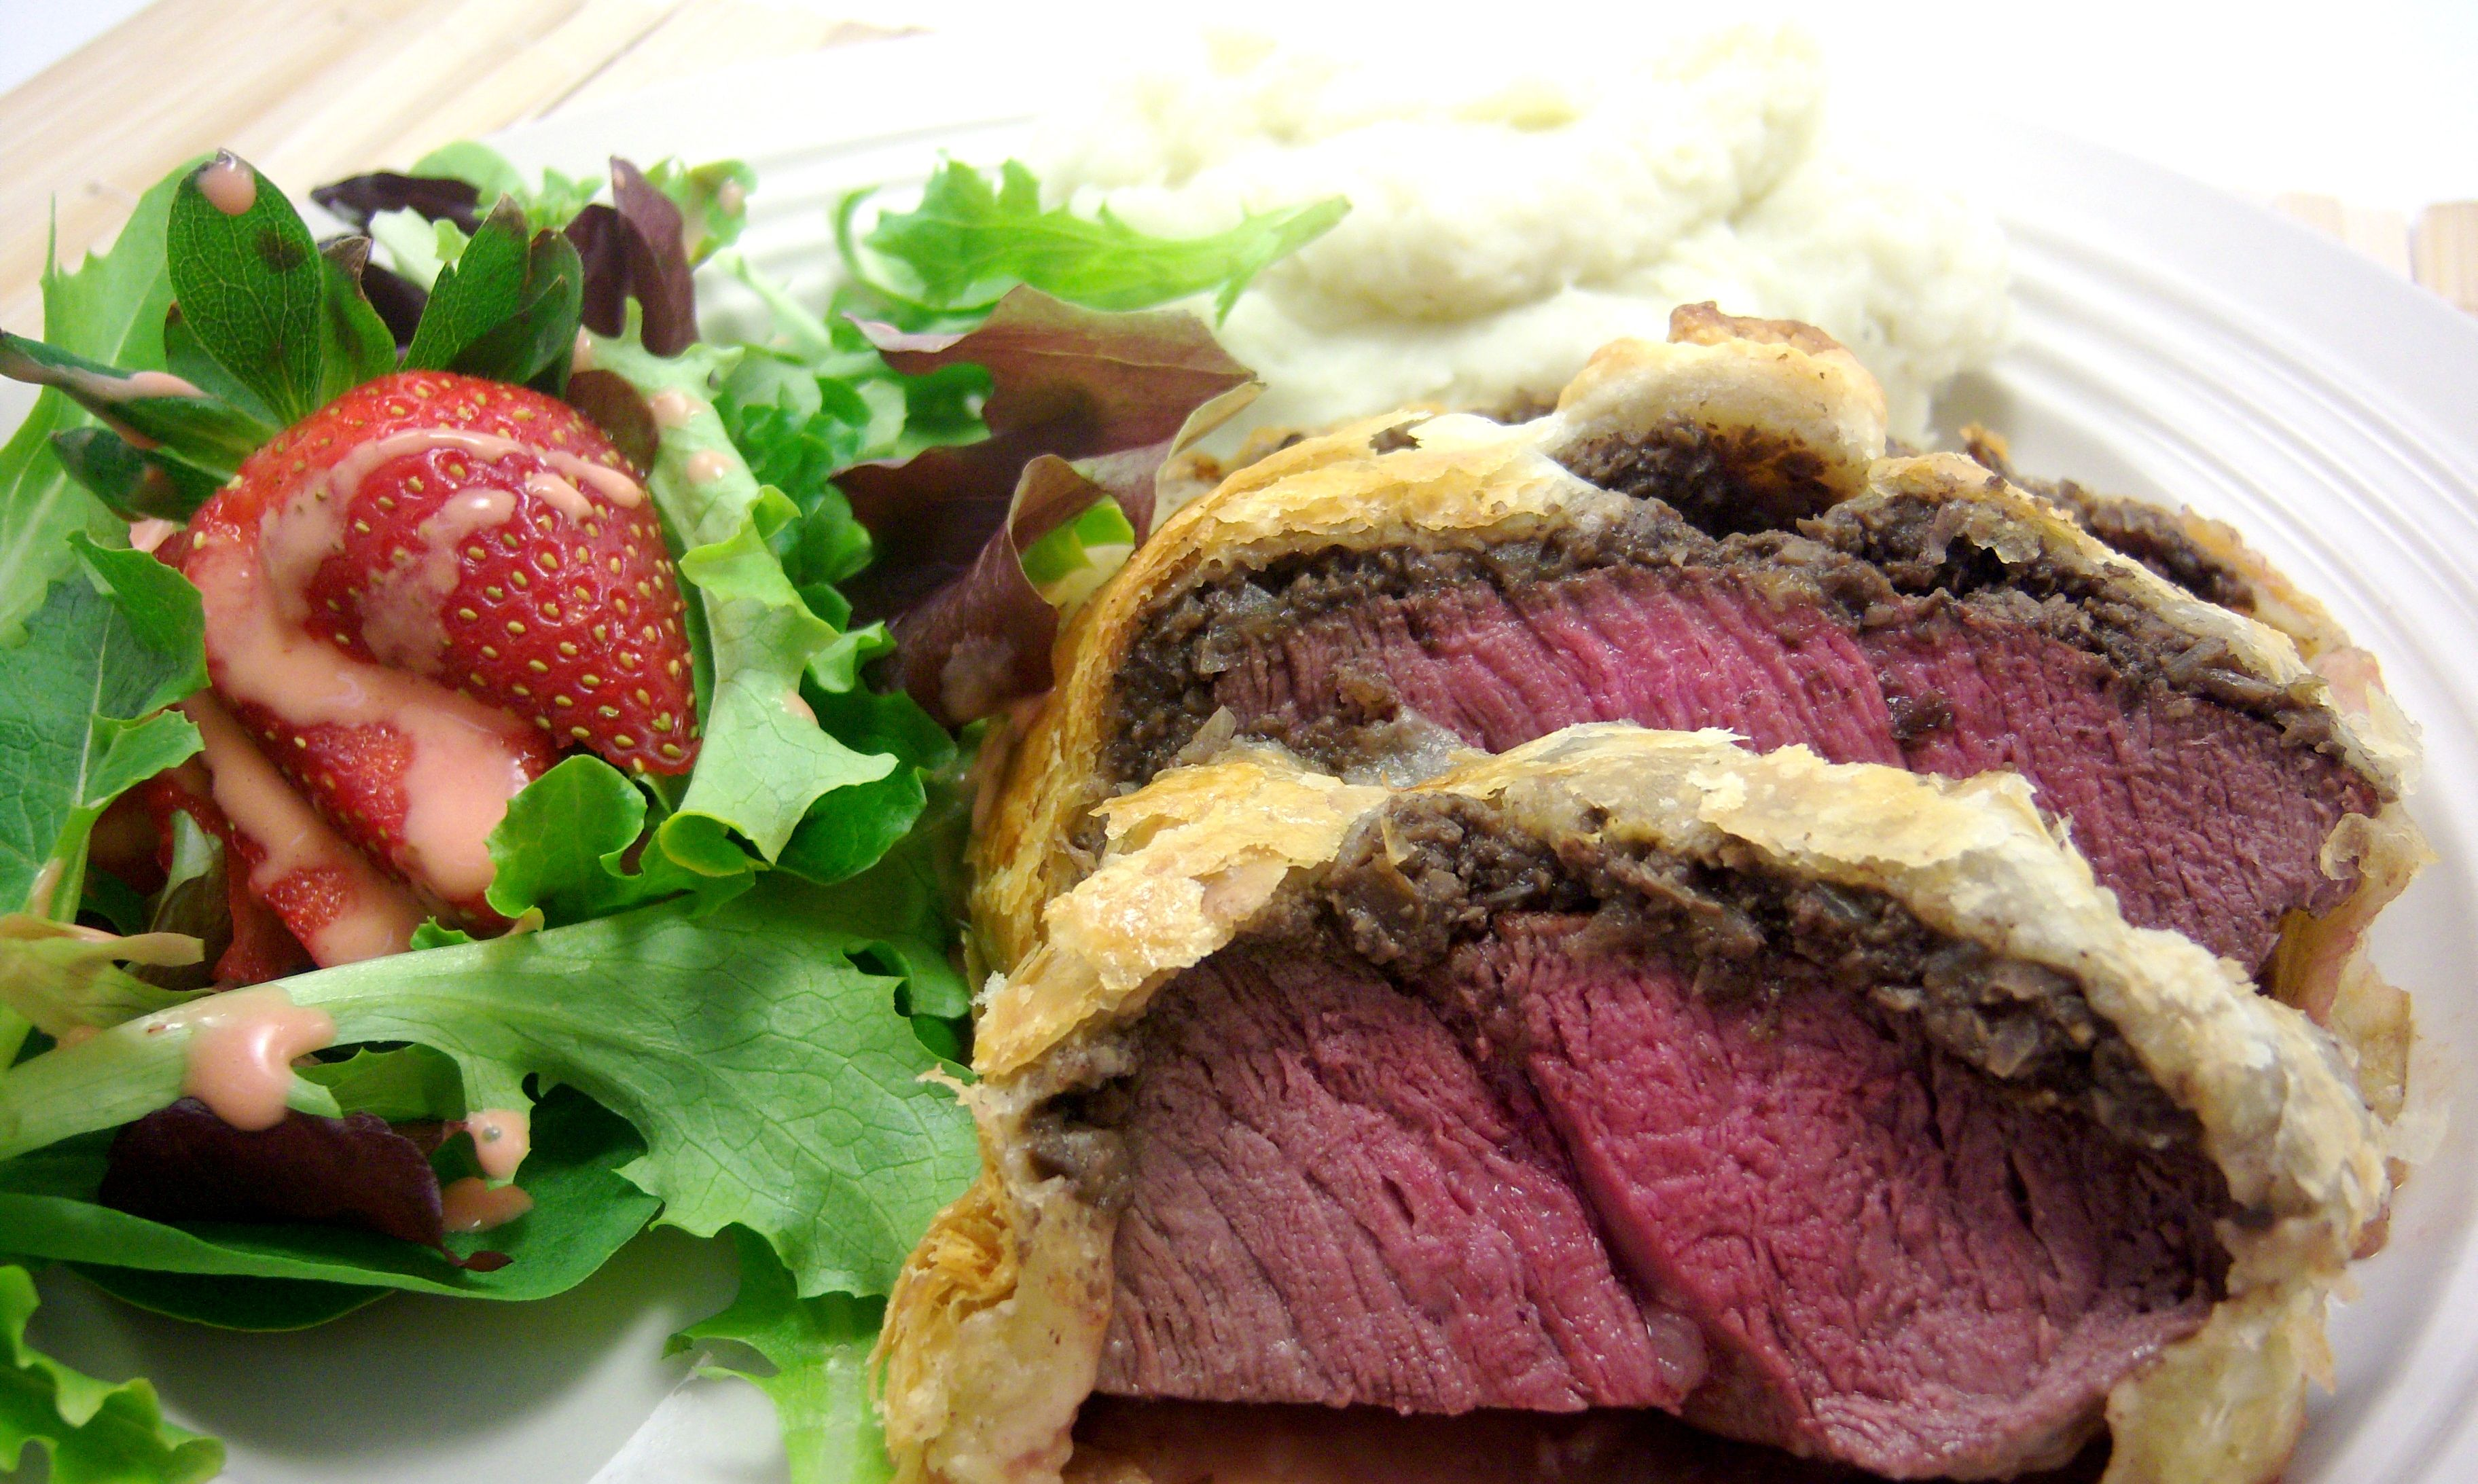 Beef Wellington:  Filet Mignon wrapped in puff pastry. What more could you ask for?